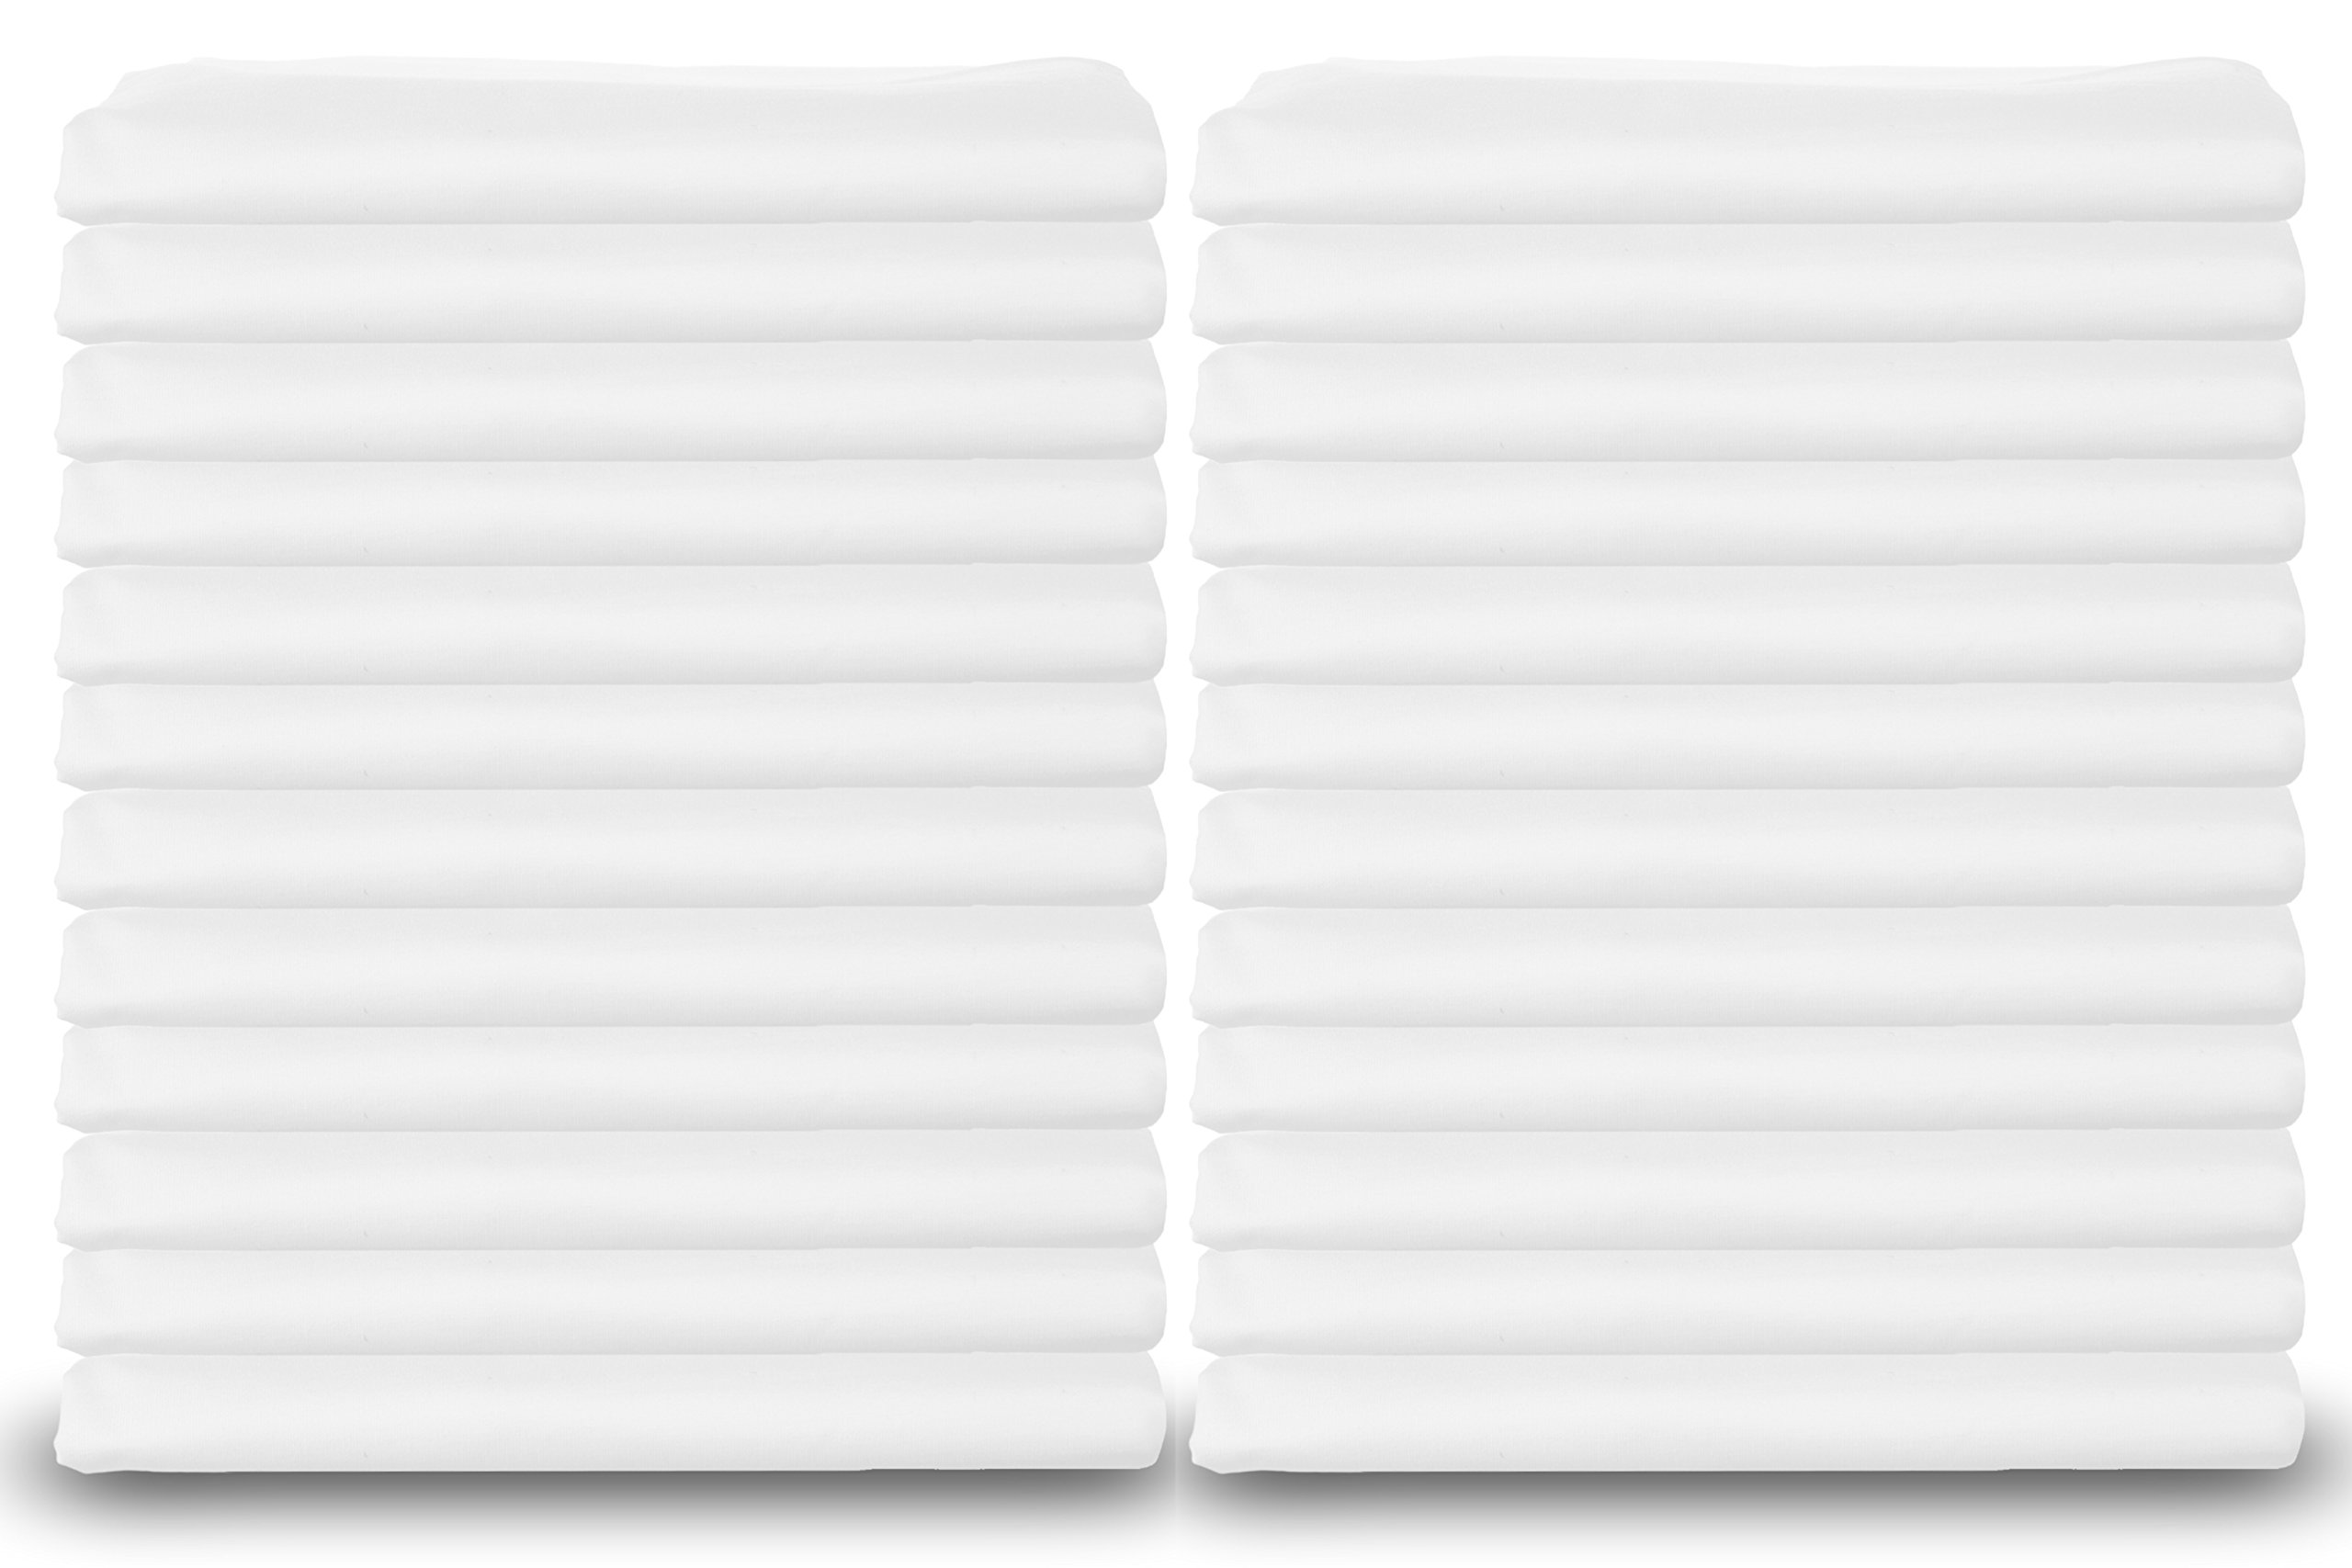 Elite White Pillowcases, Standard Size, T-180 Percale, 24-Pack